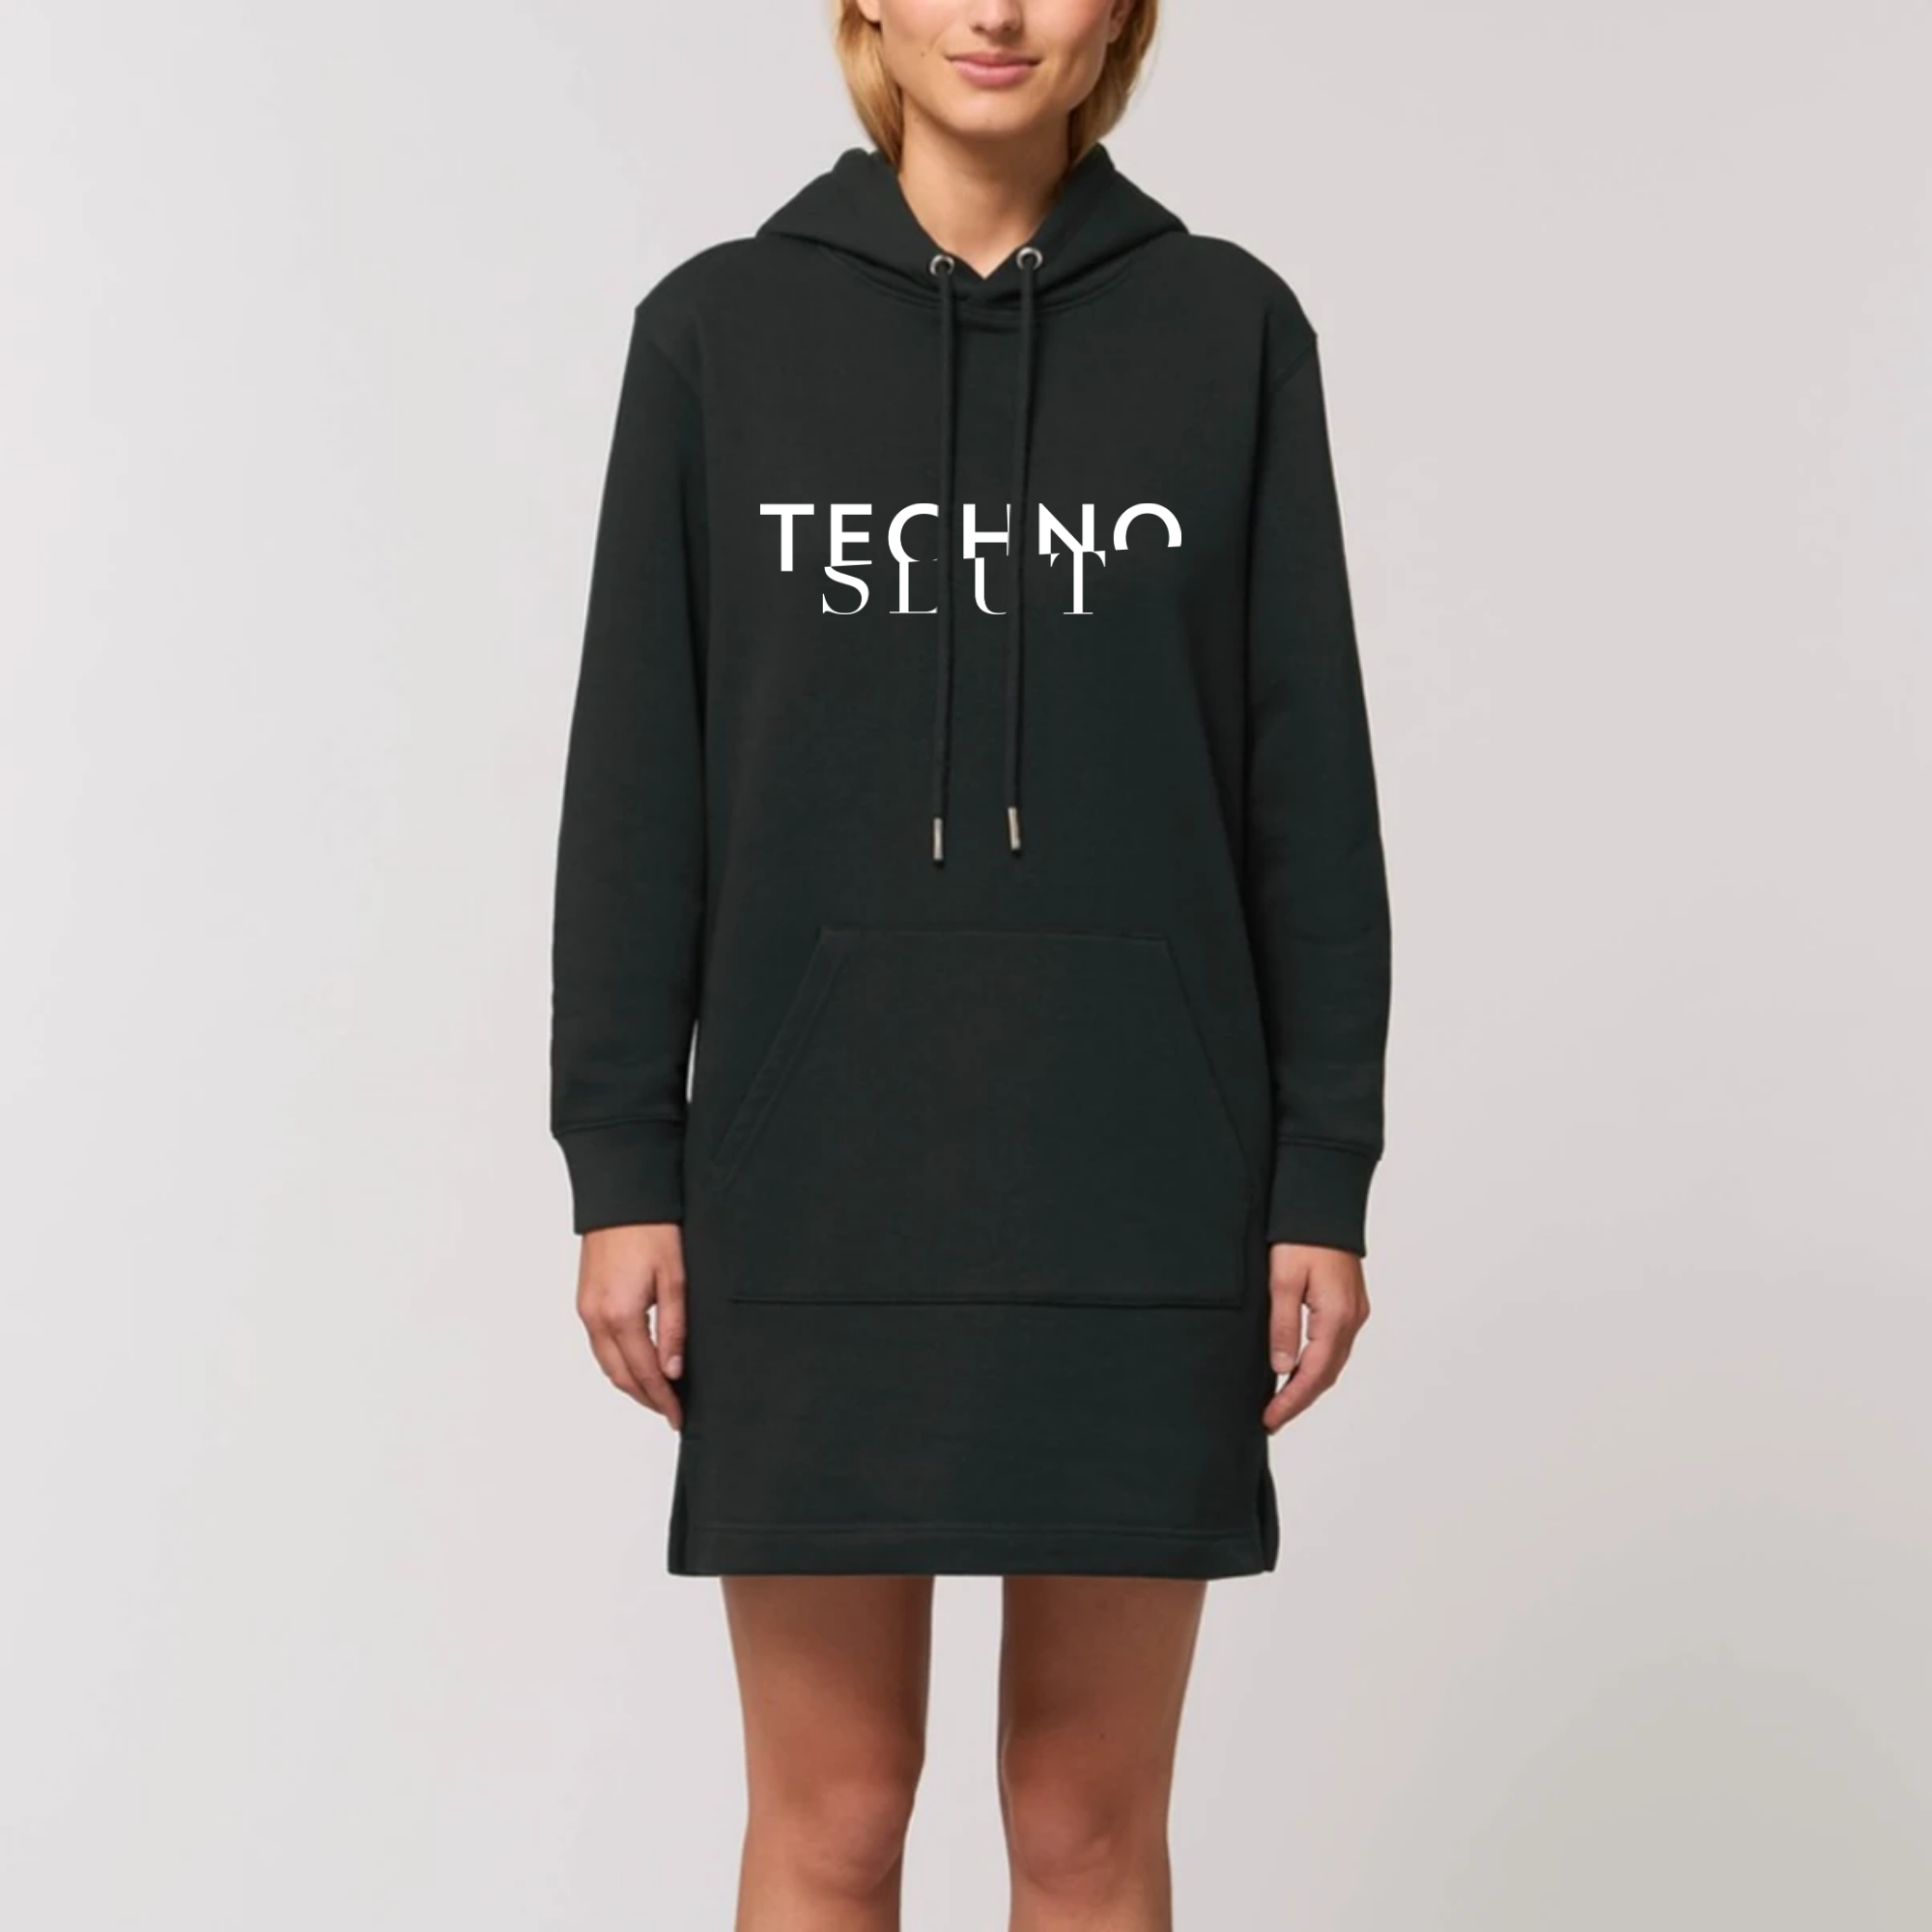 Techno Slut Hoodie Dress